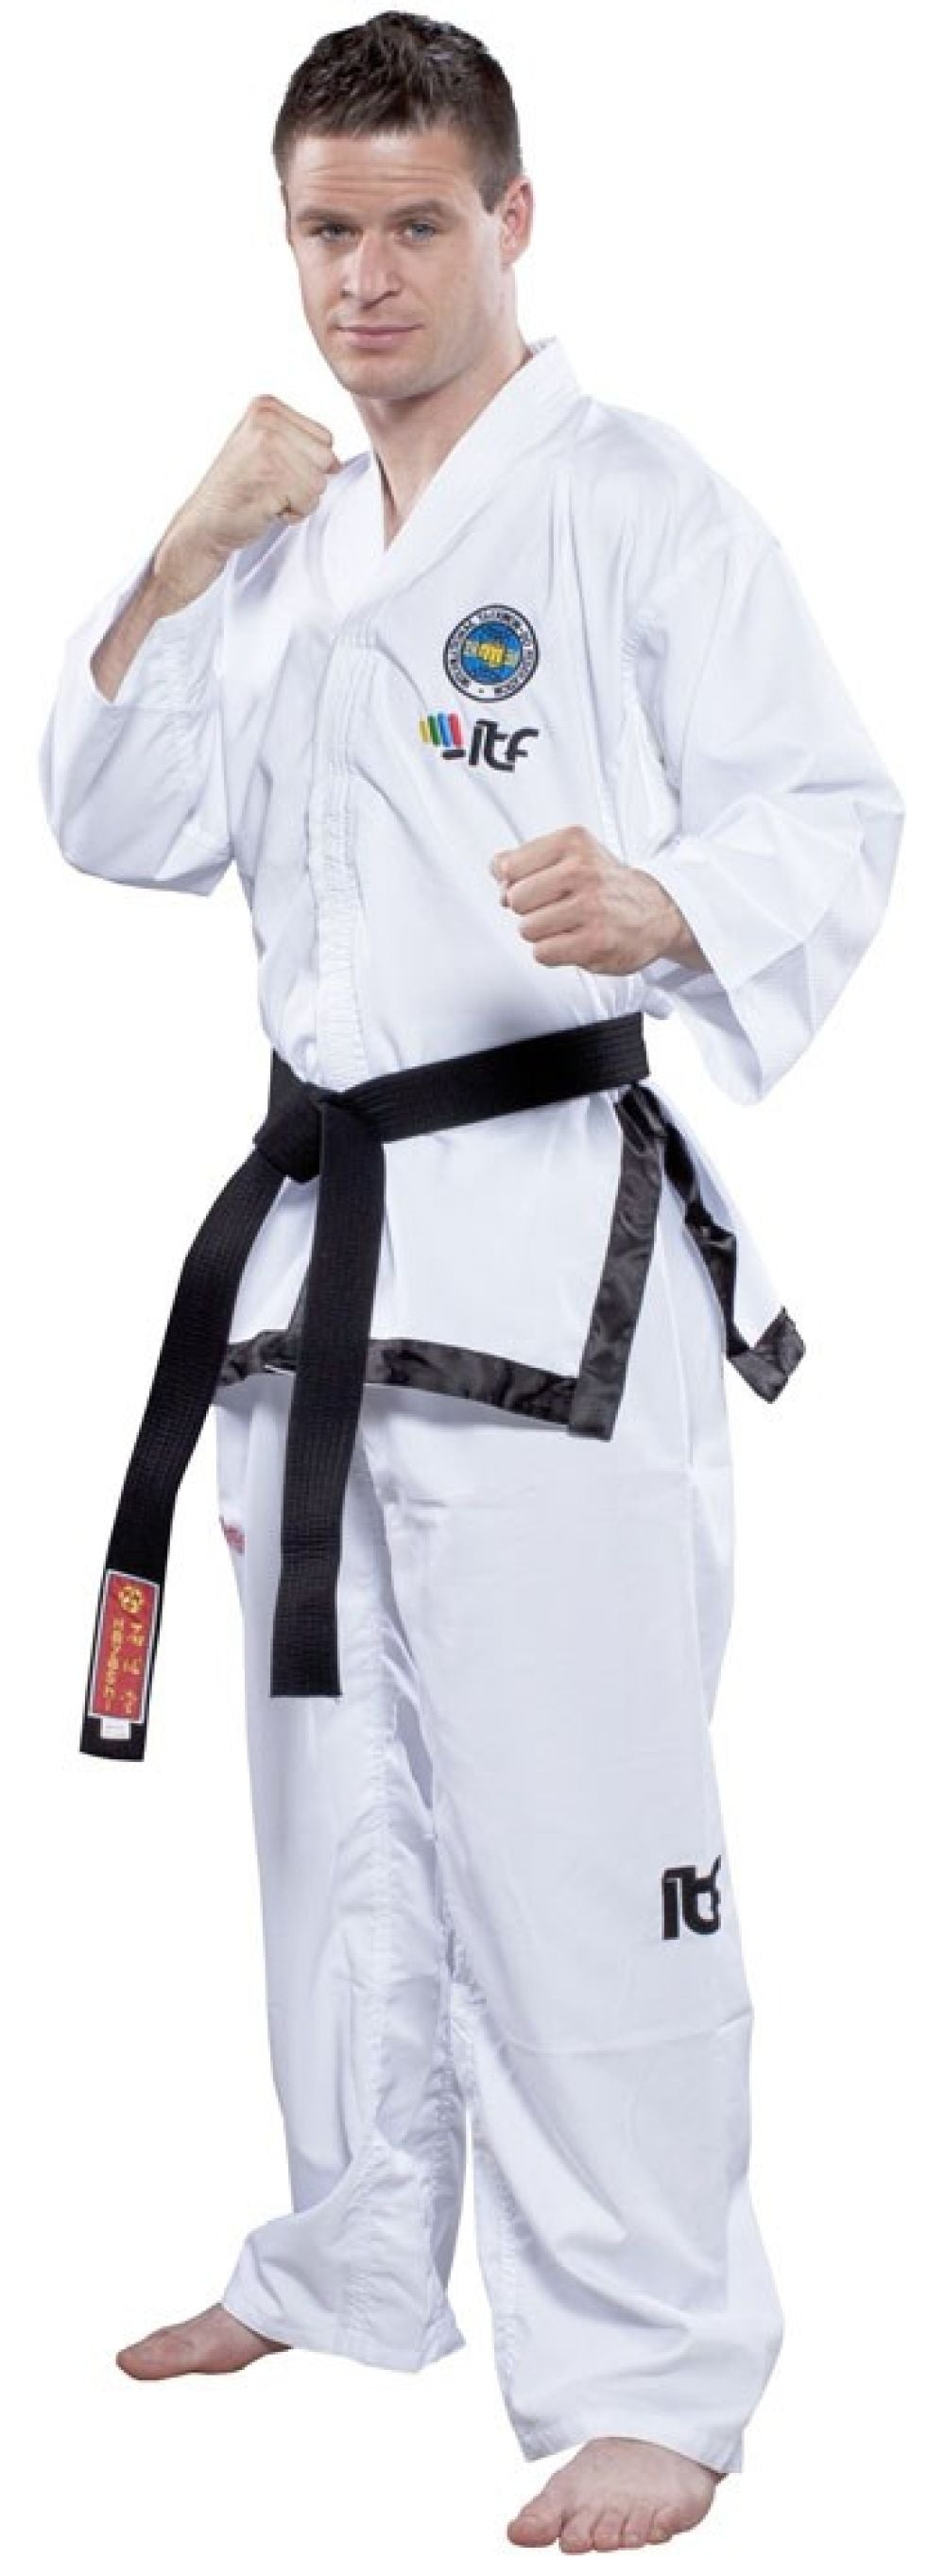 TOP TEN ITF Assistant Instructor Uniform - Diamond Dobok - polyester